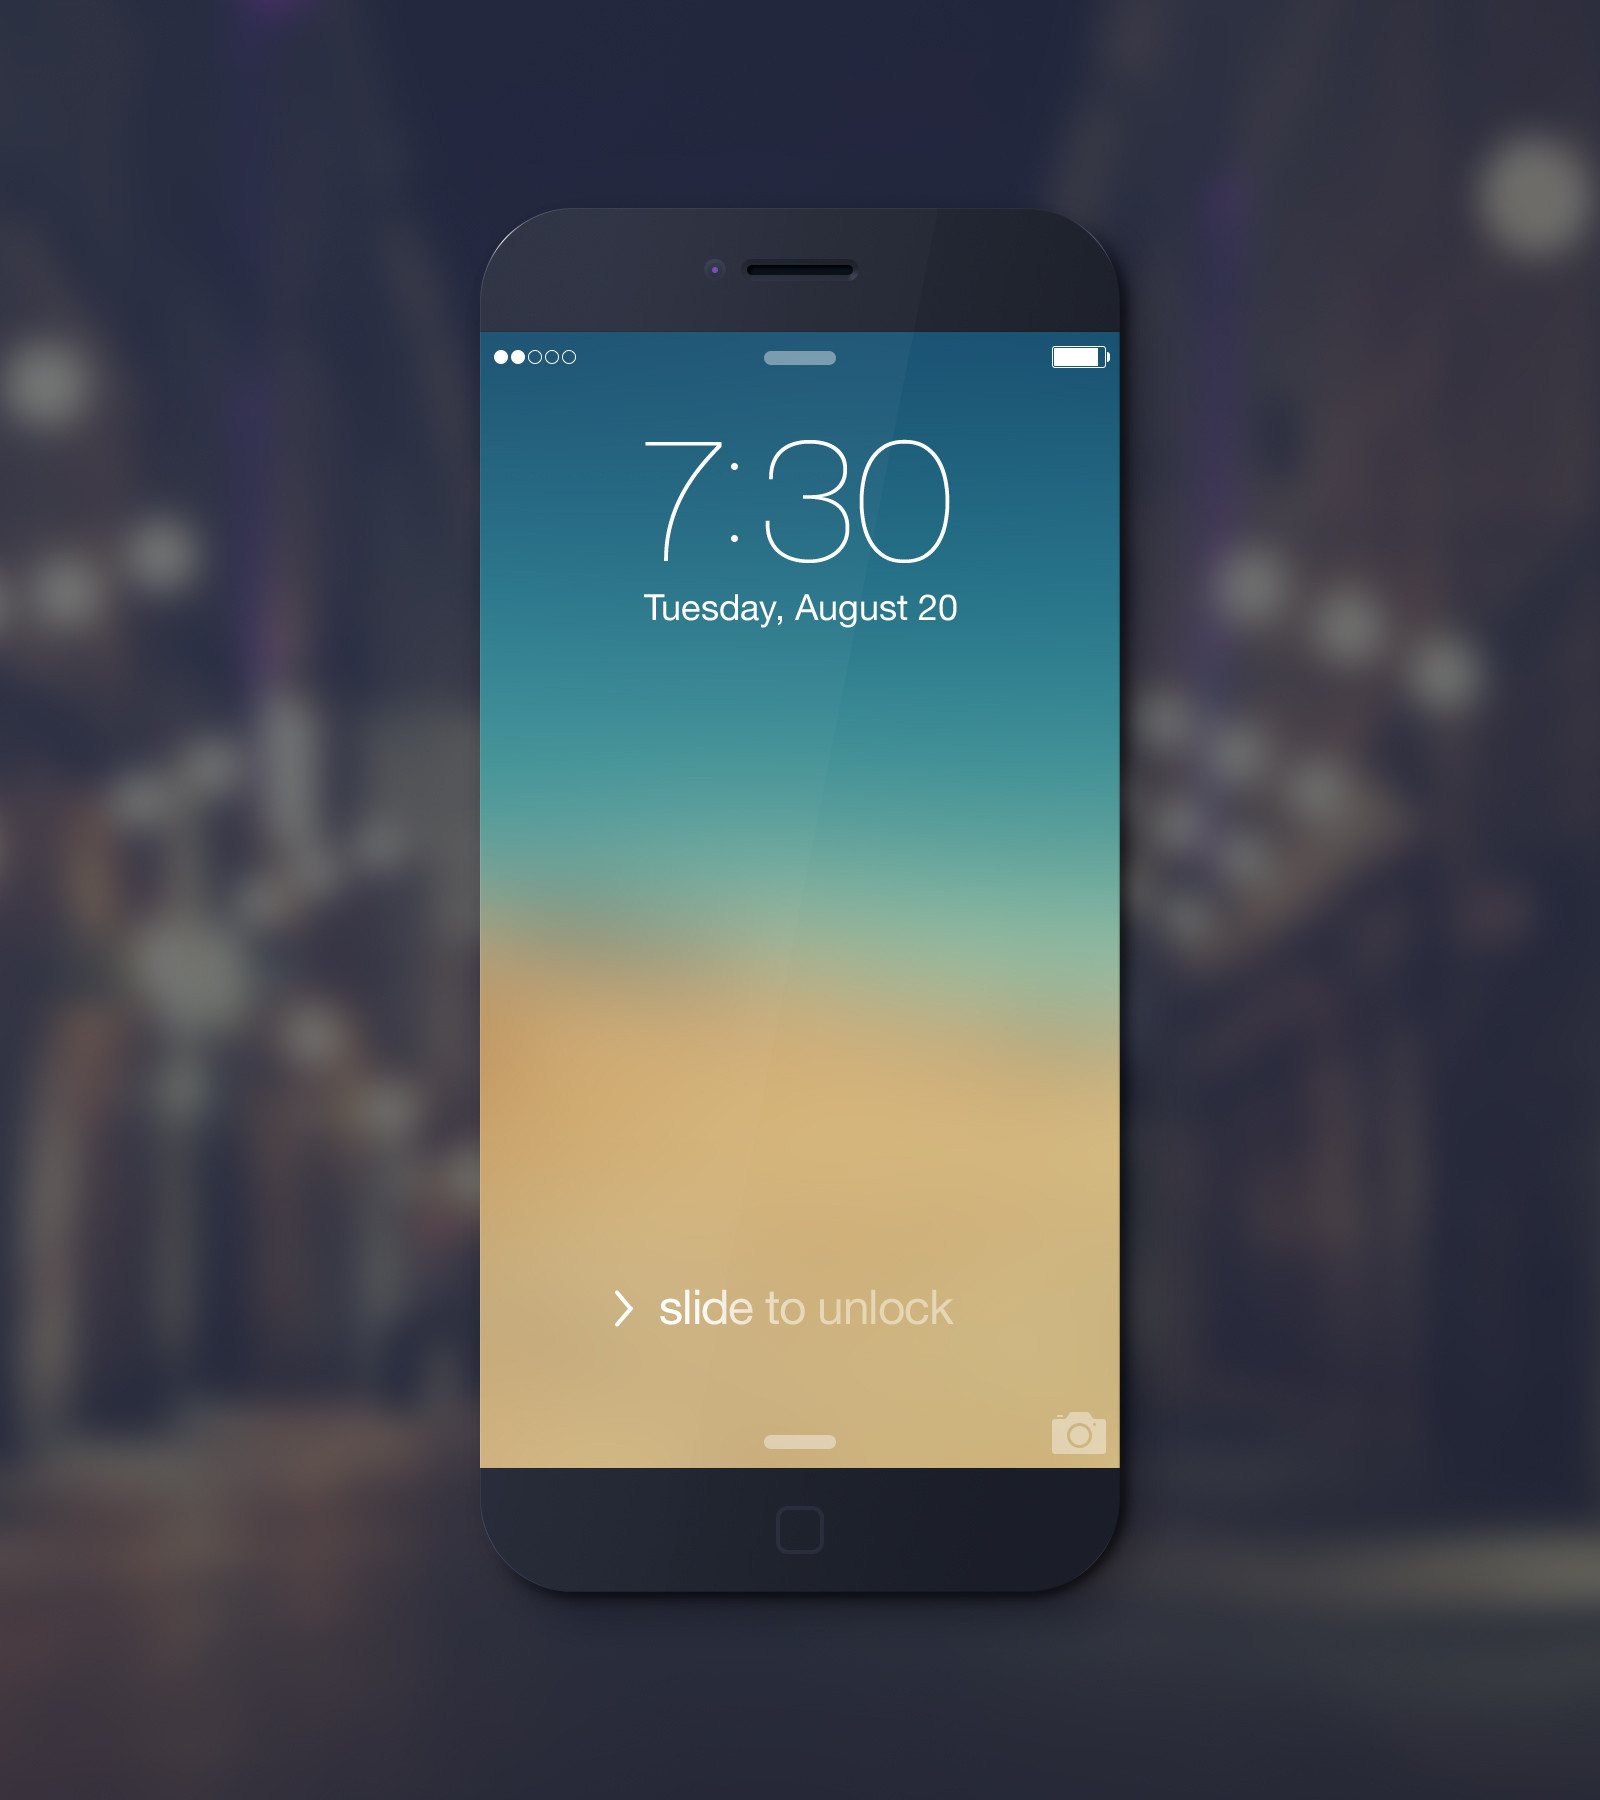 5 IPhone 6 Mockup PSD Images